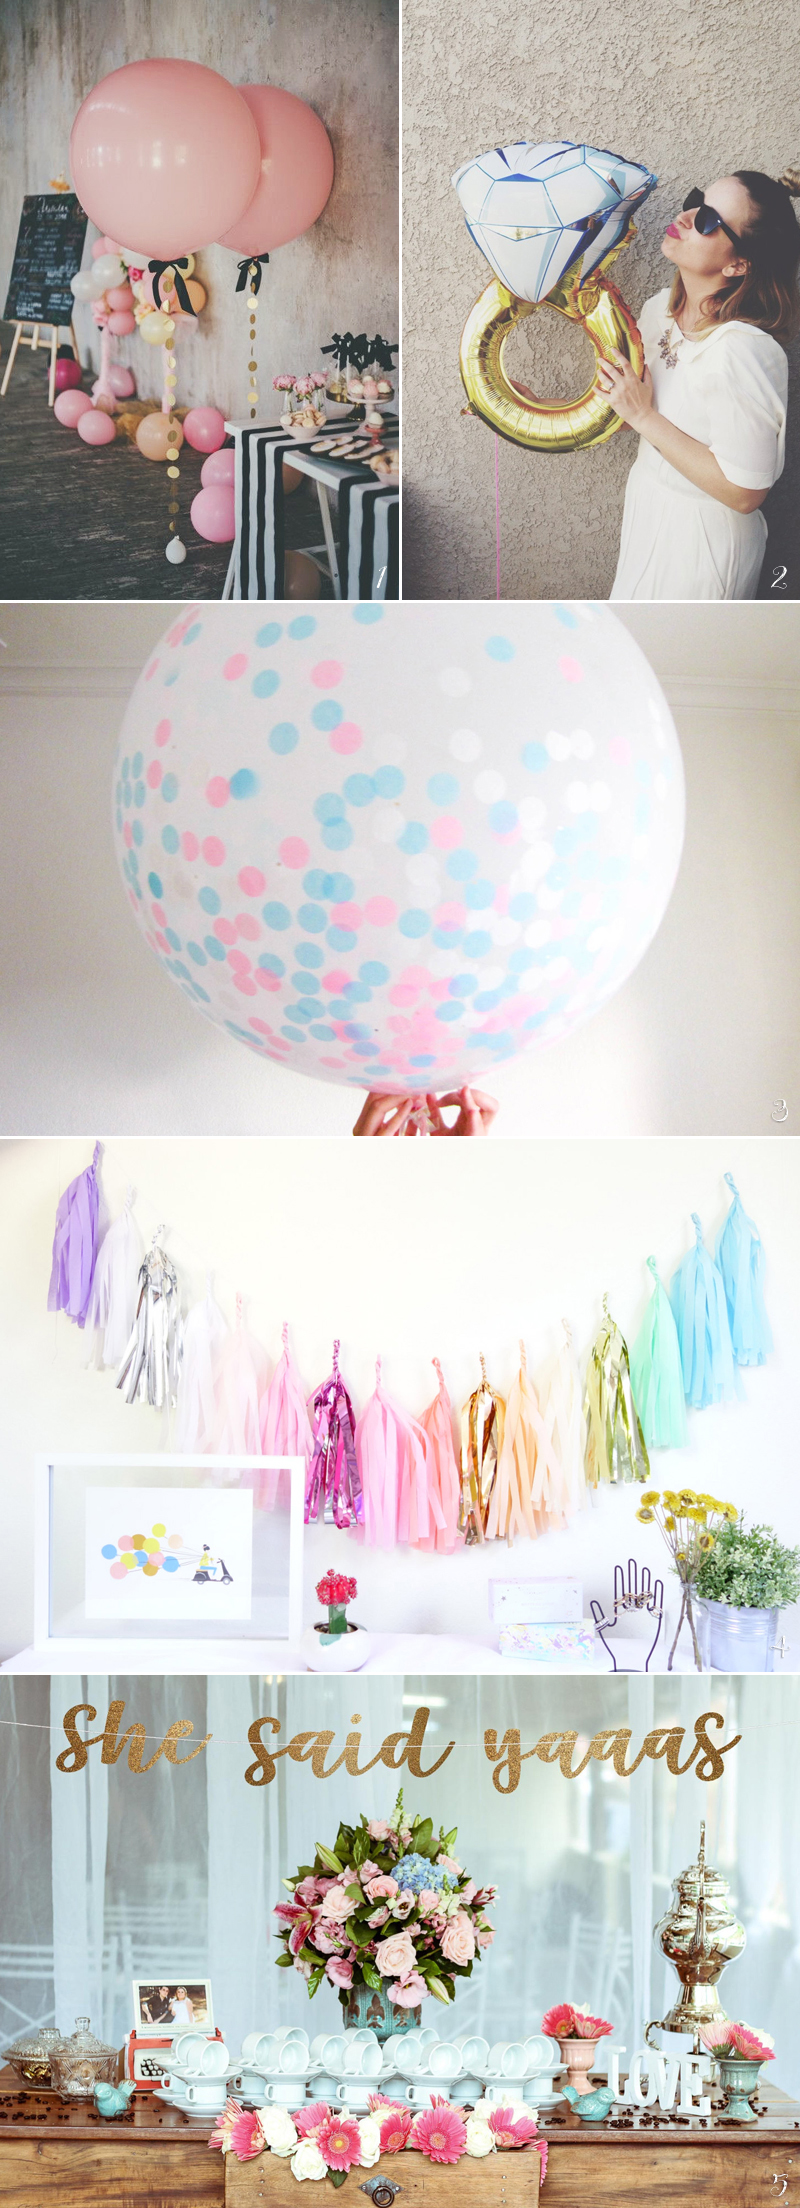 Sweet Gift For Her: 30 Creative Things You Need To Throw An Awesome Bridal